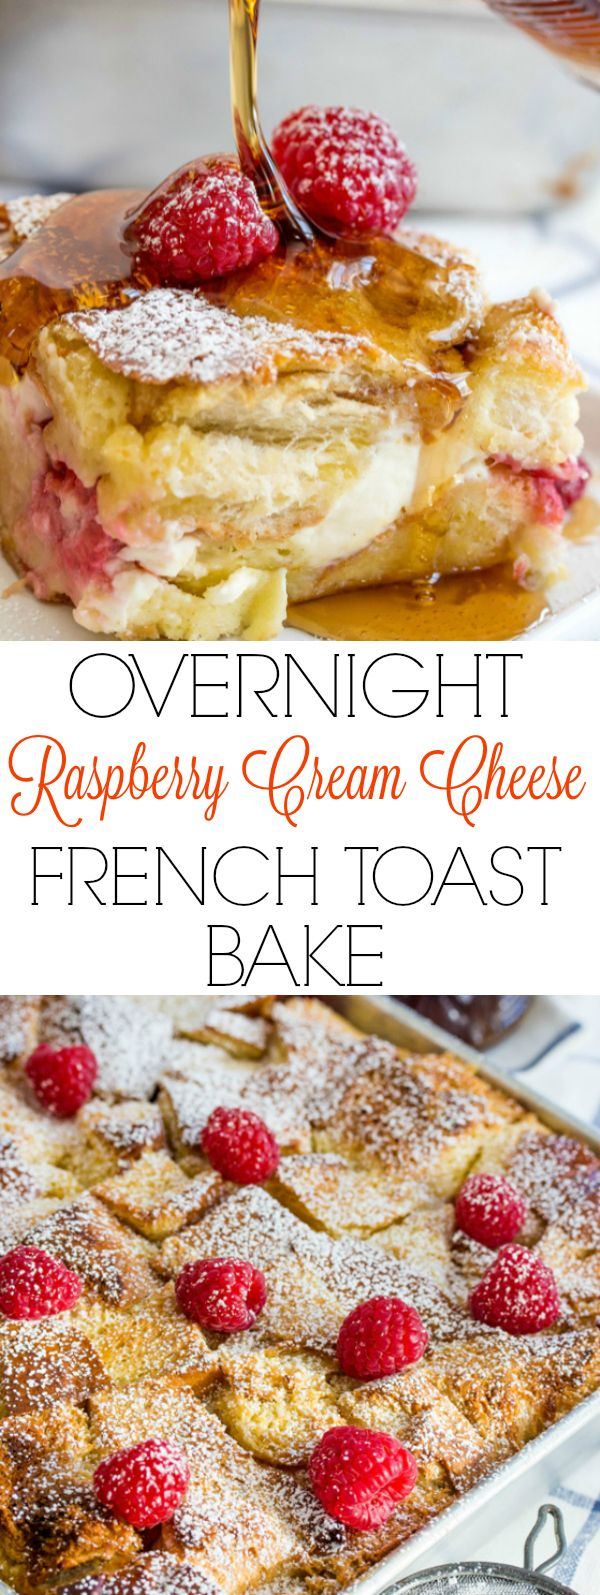 Perk up your morning with this utterly delicious and super easy Raspberry Cream Cheese French Toast Bake!